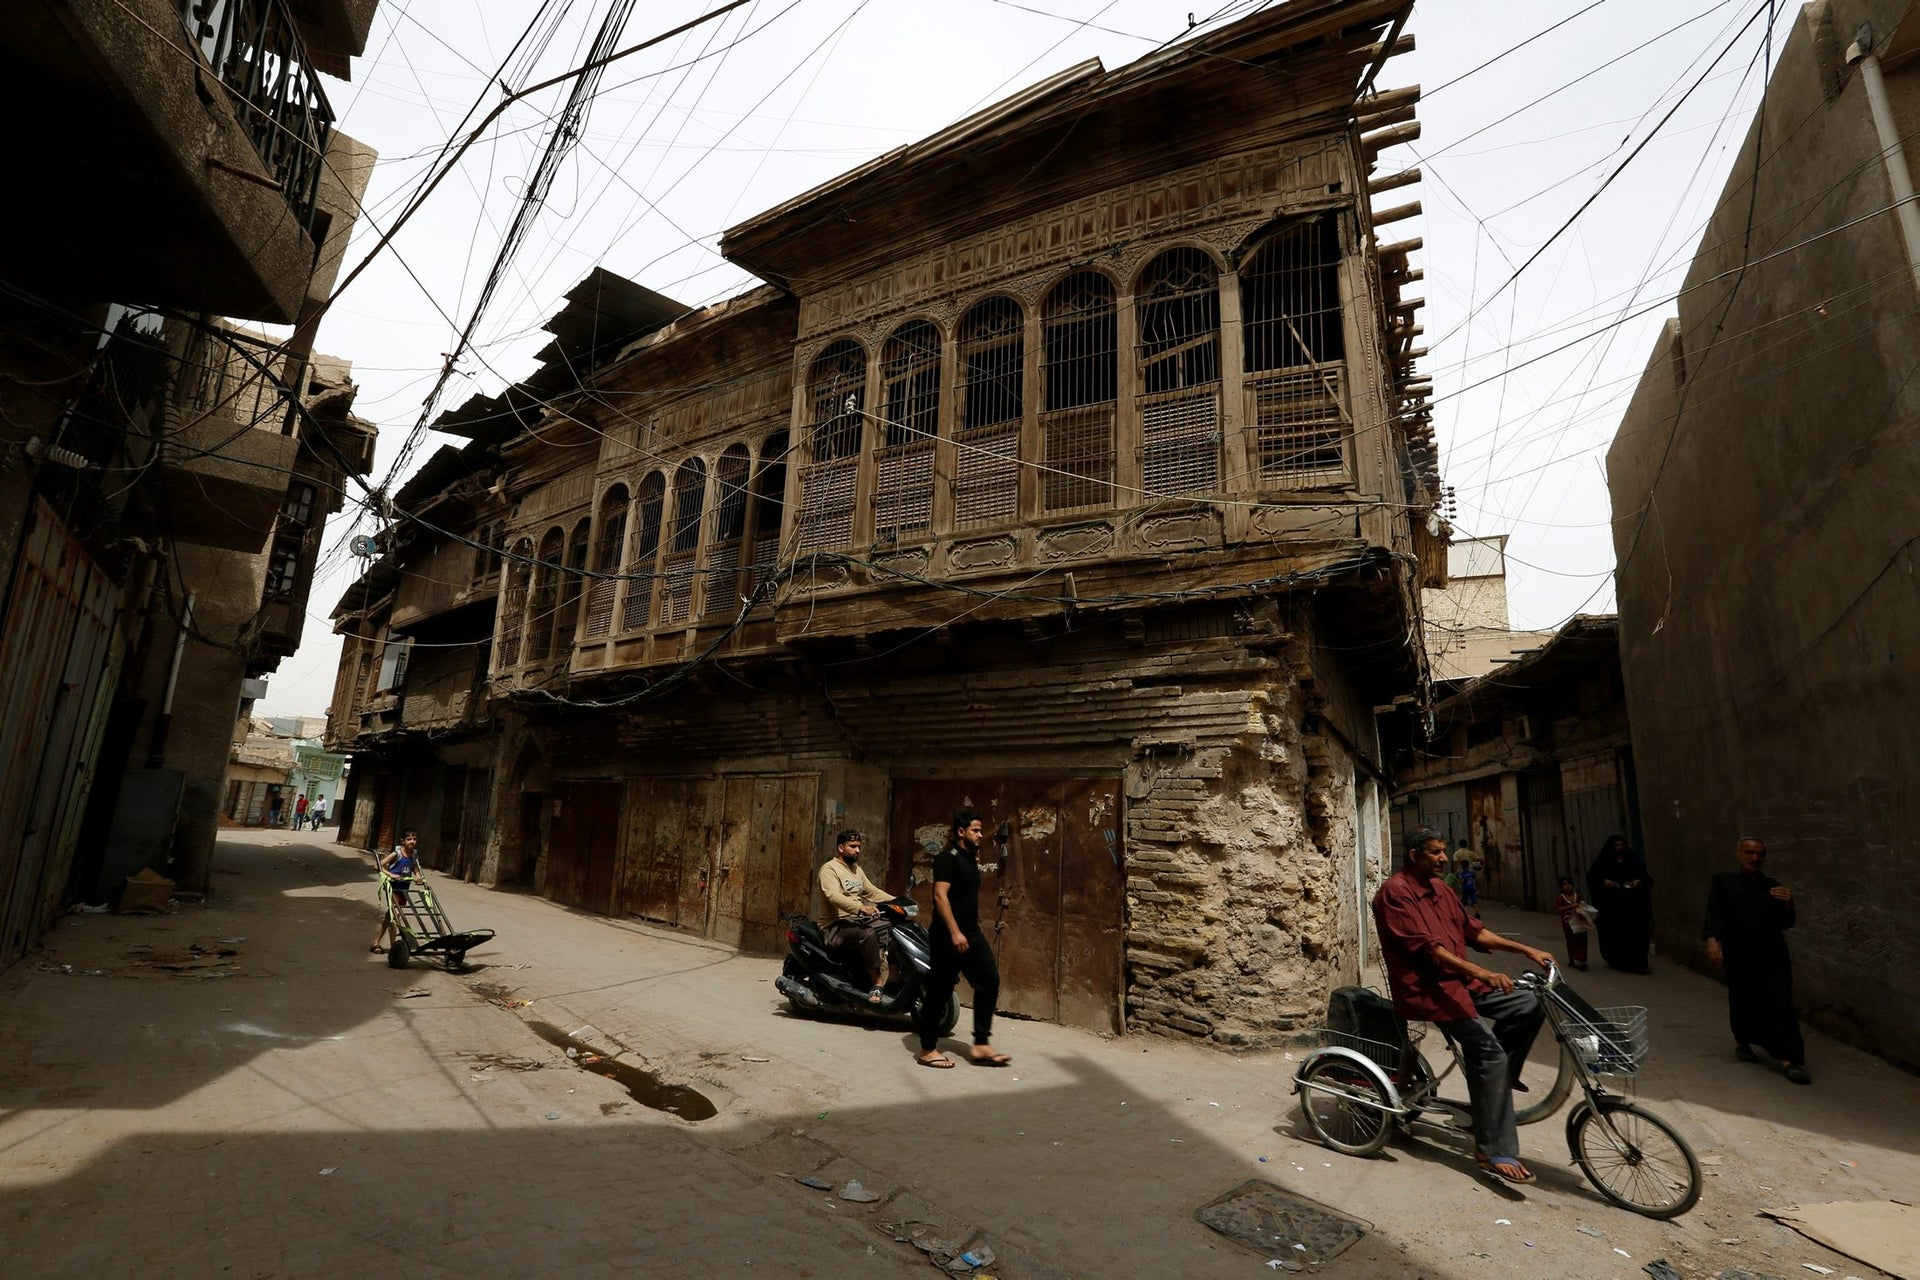 Iraqis pass by old houses in the center of Baghdad, Iraq April 6, 2018.